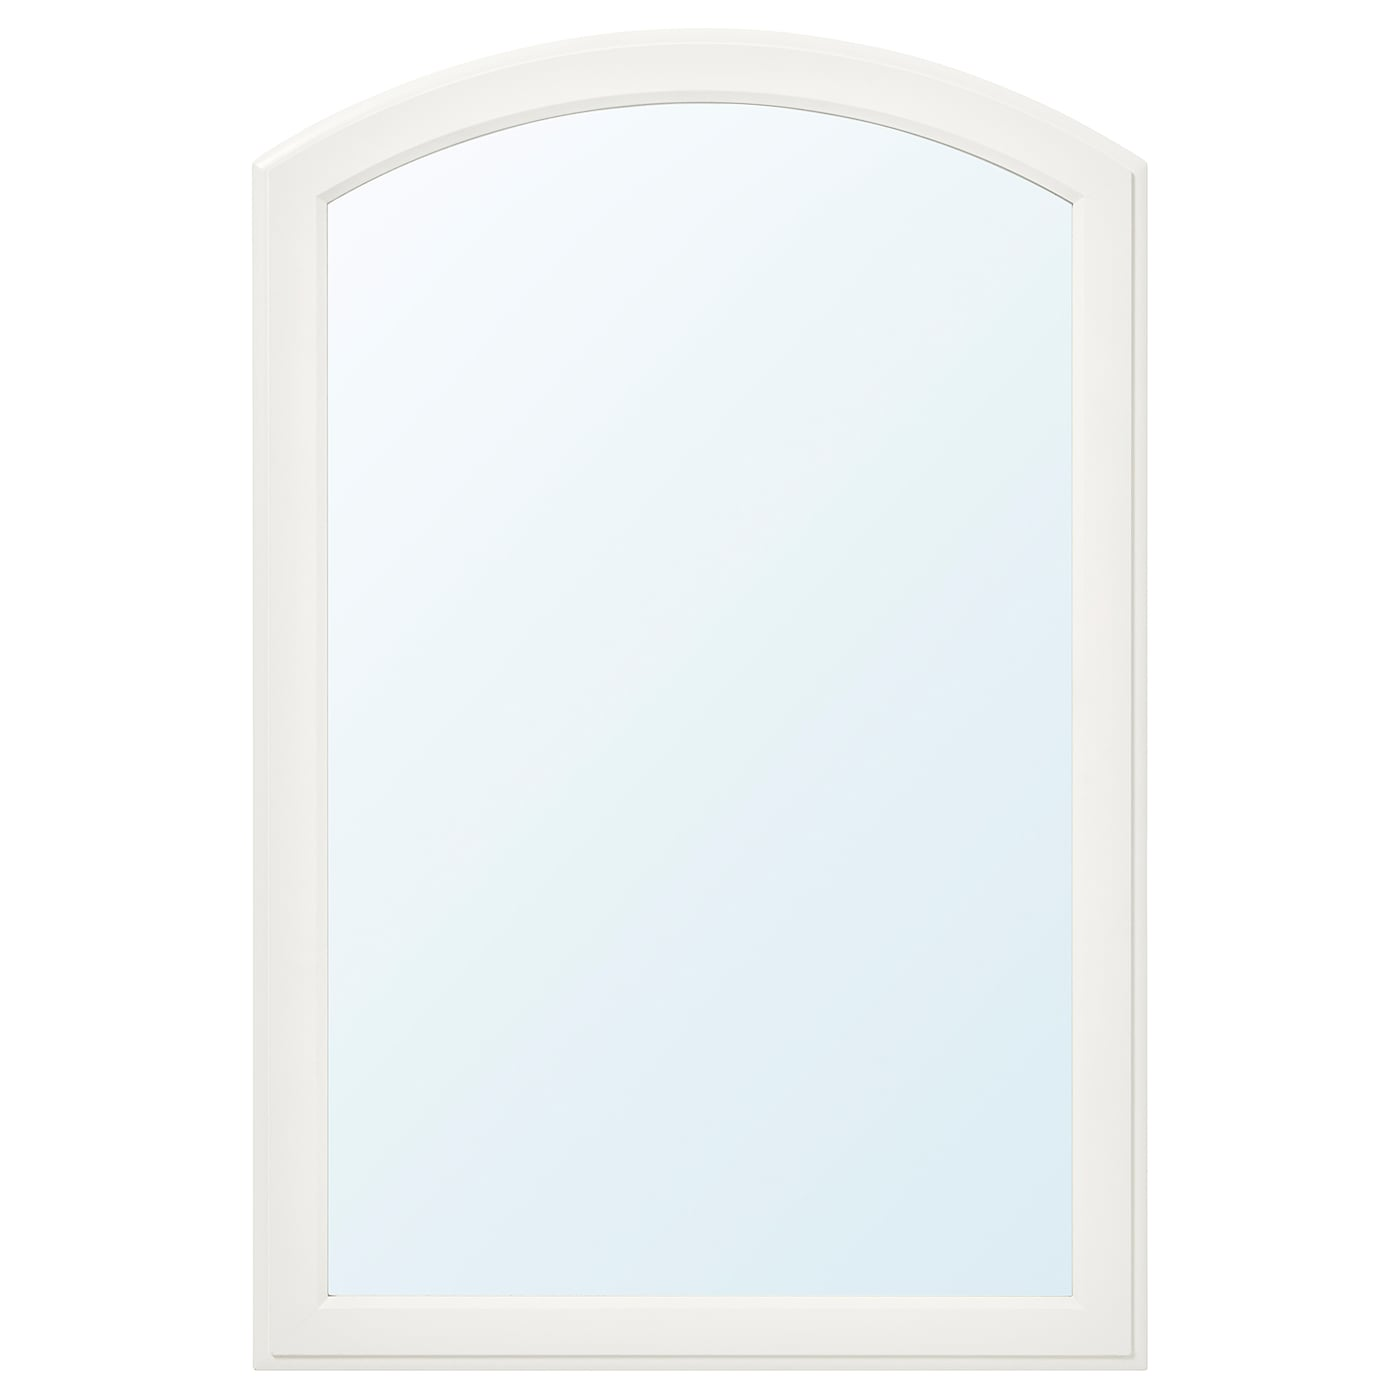 Ikea Matredal Mirror Suitable For Use In Most Rooms And Tested Roved Bathroom